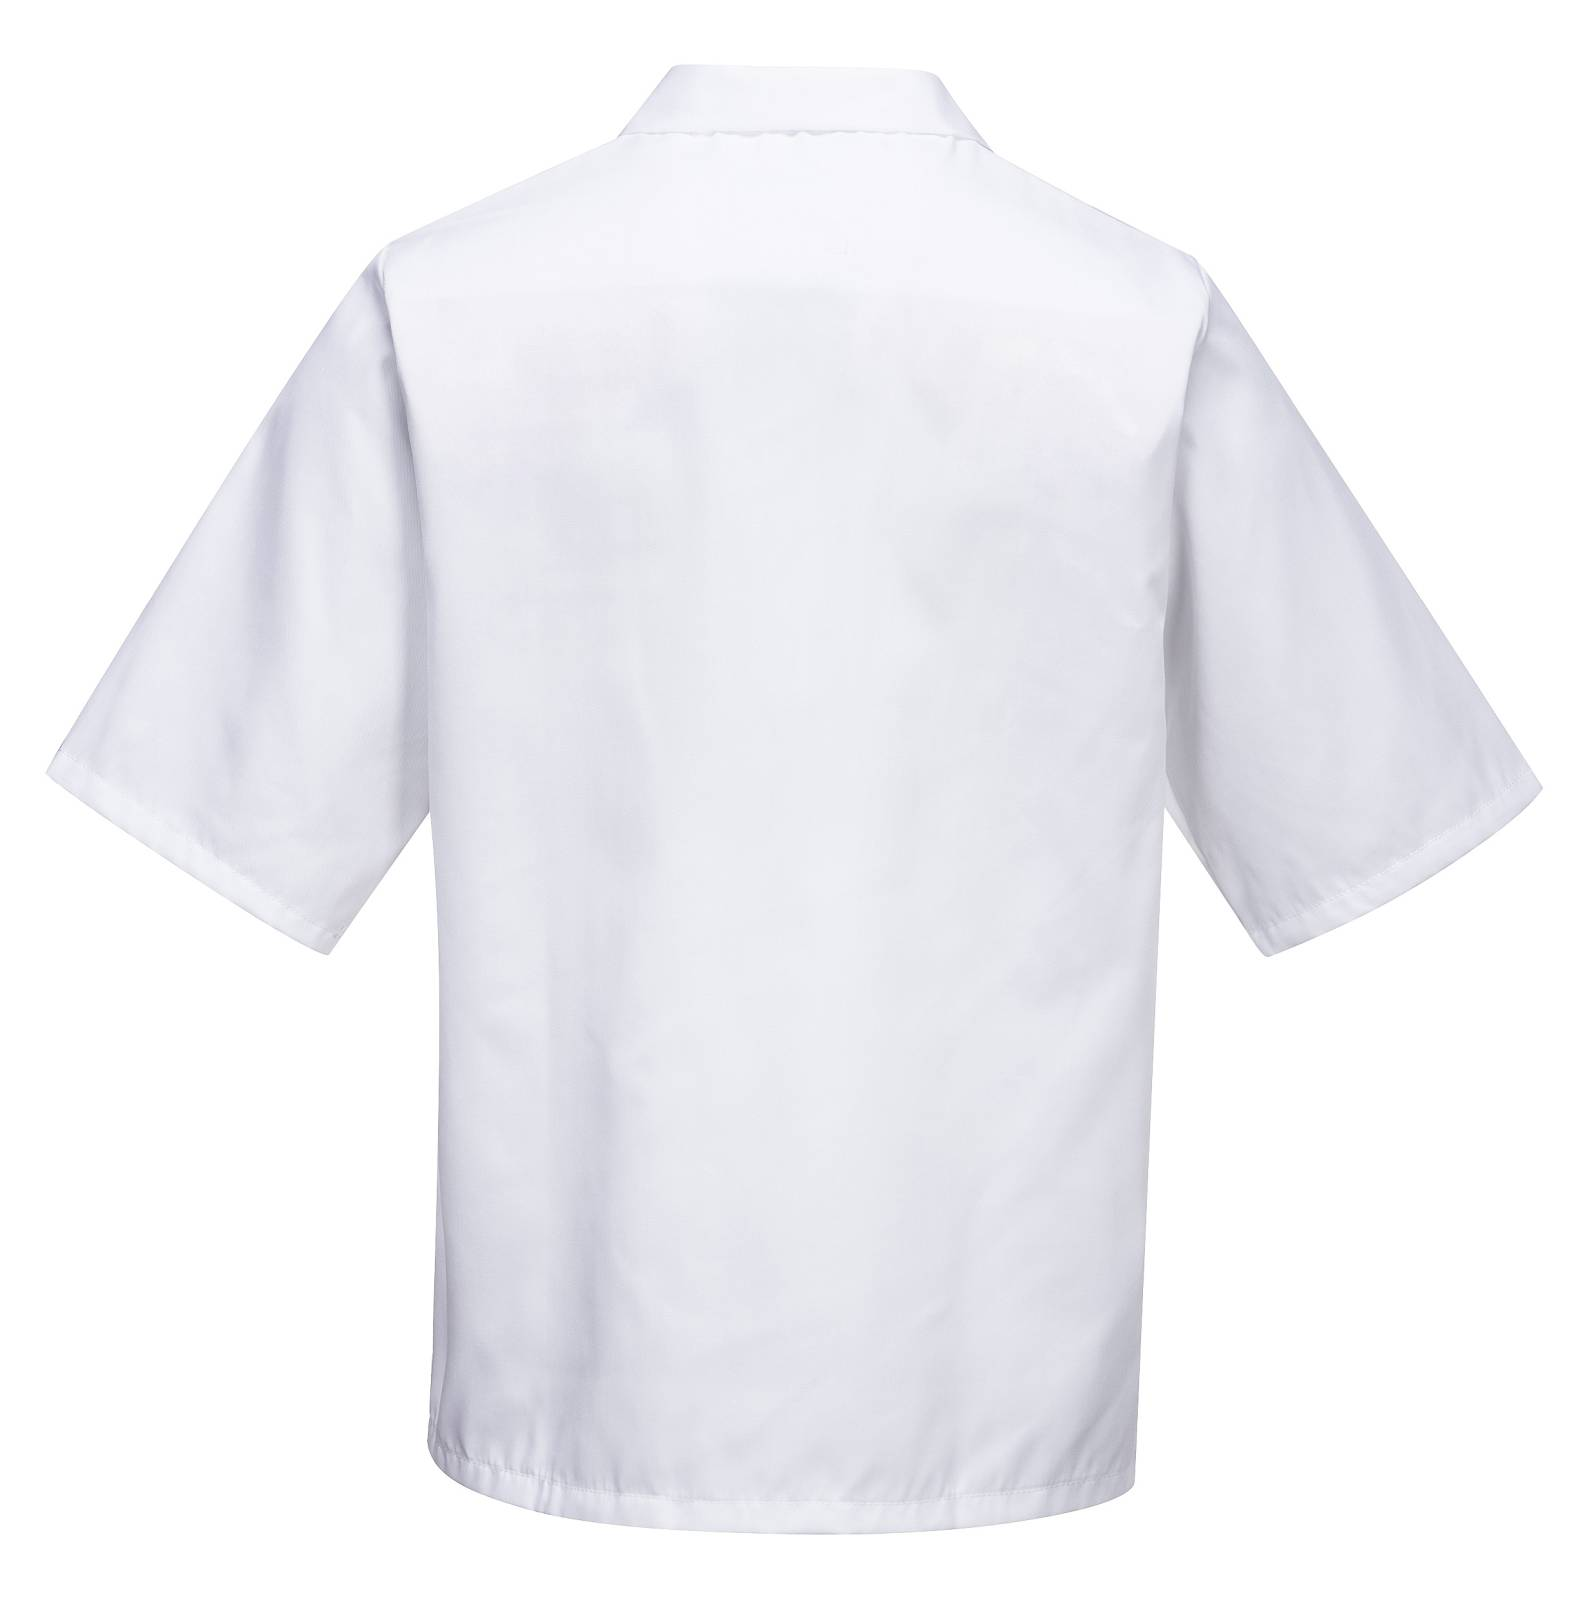 Portwest Shirts 2209 wit(WH)